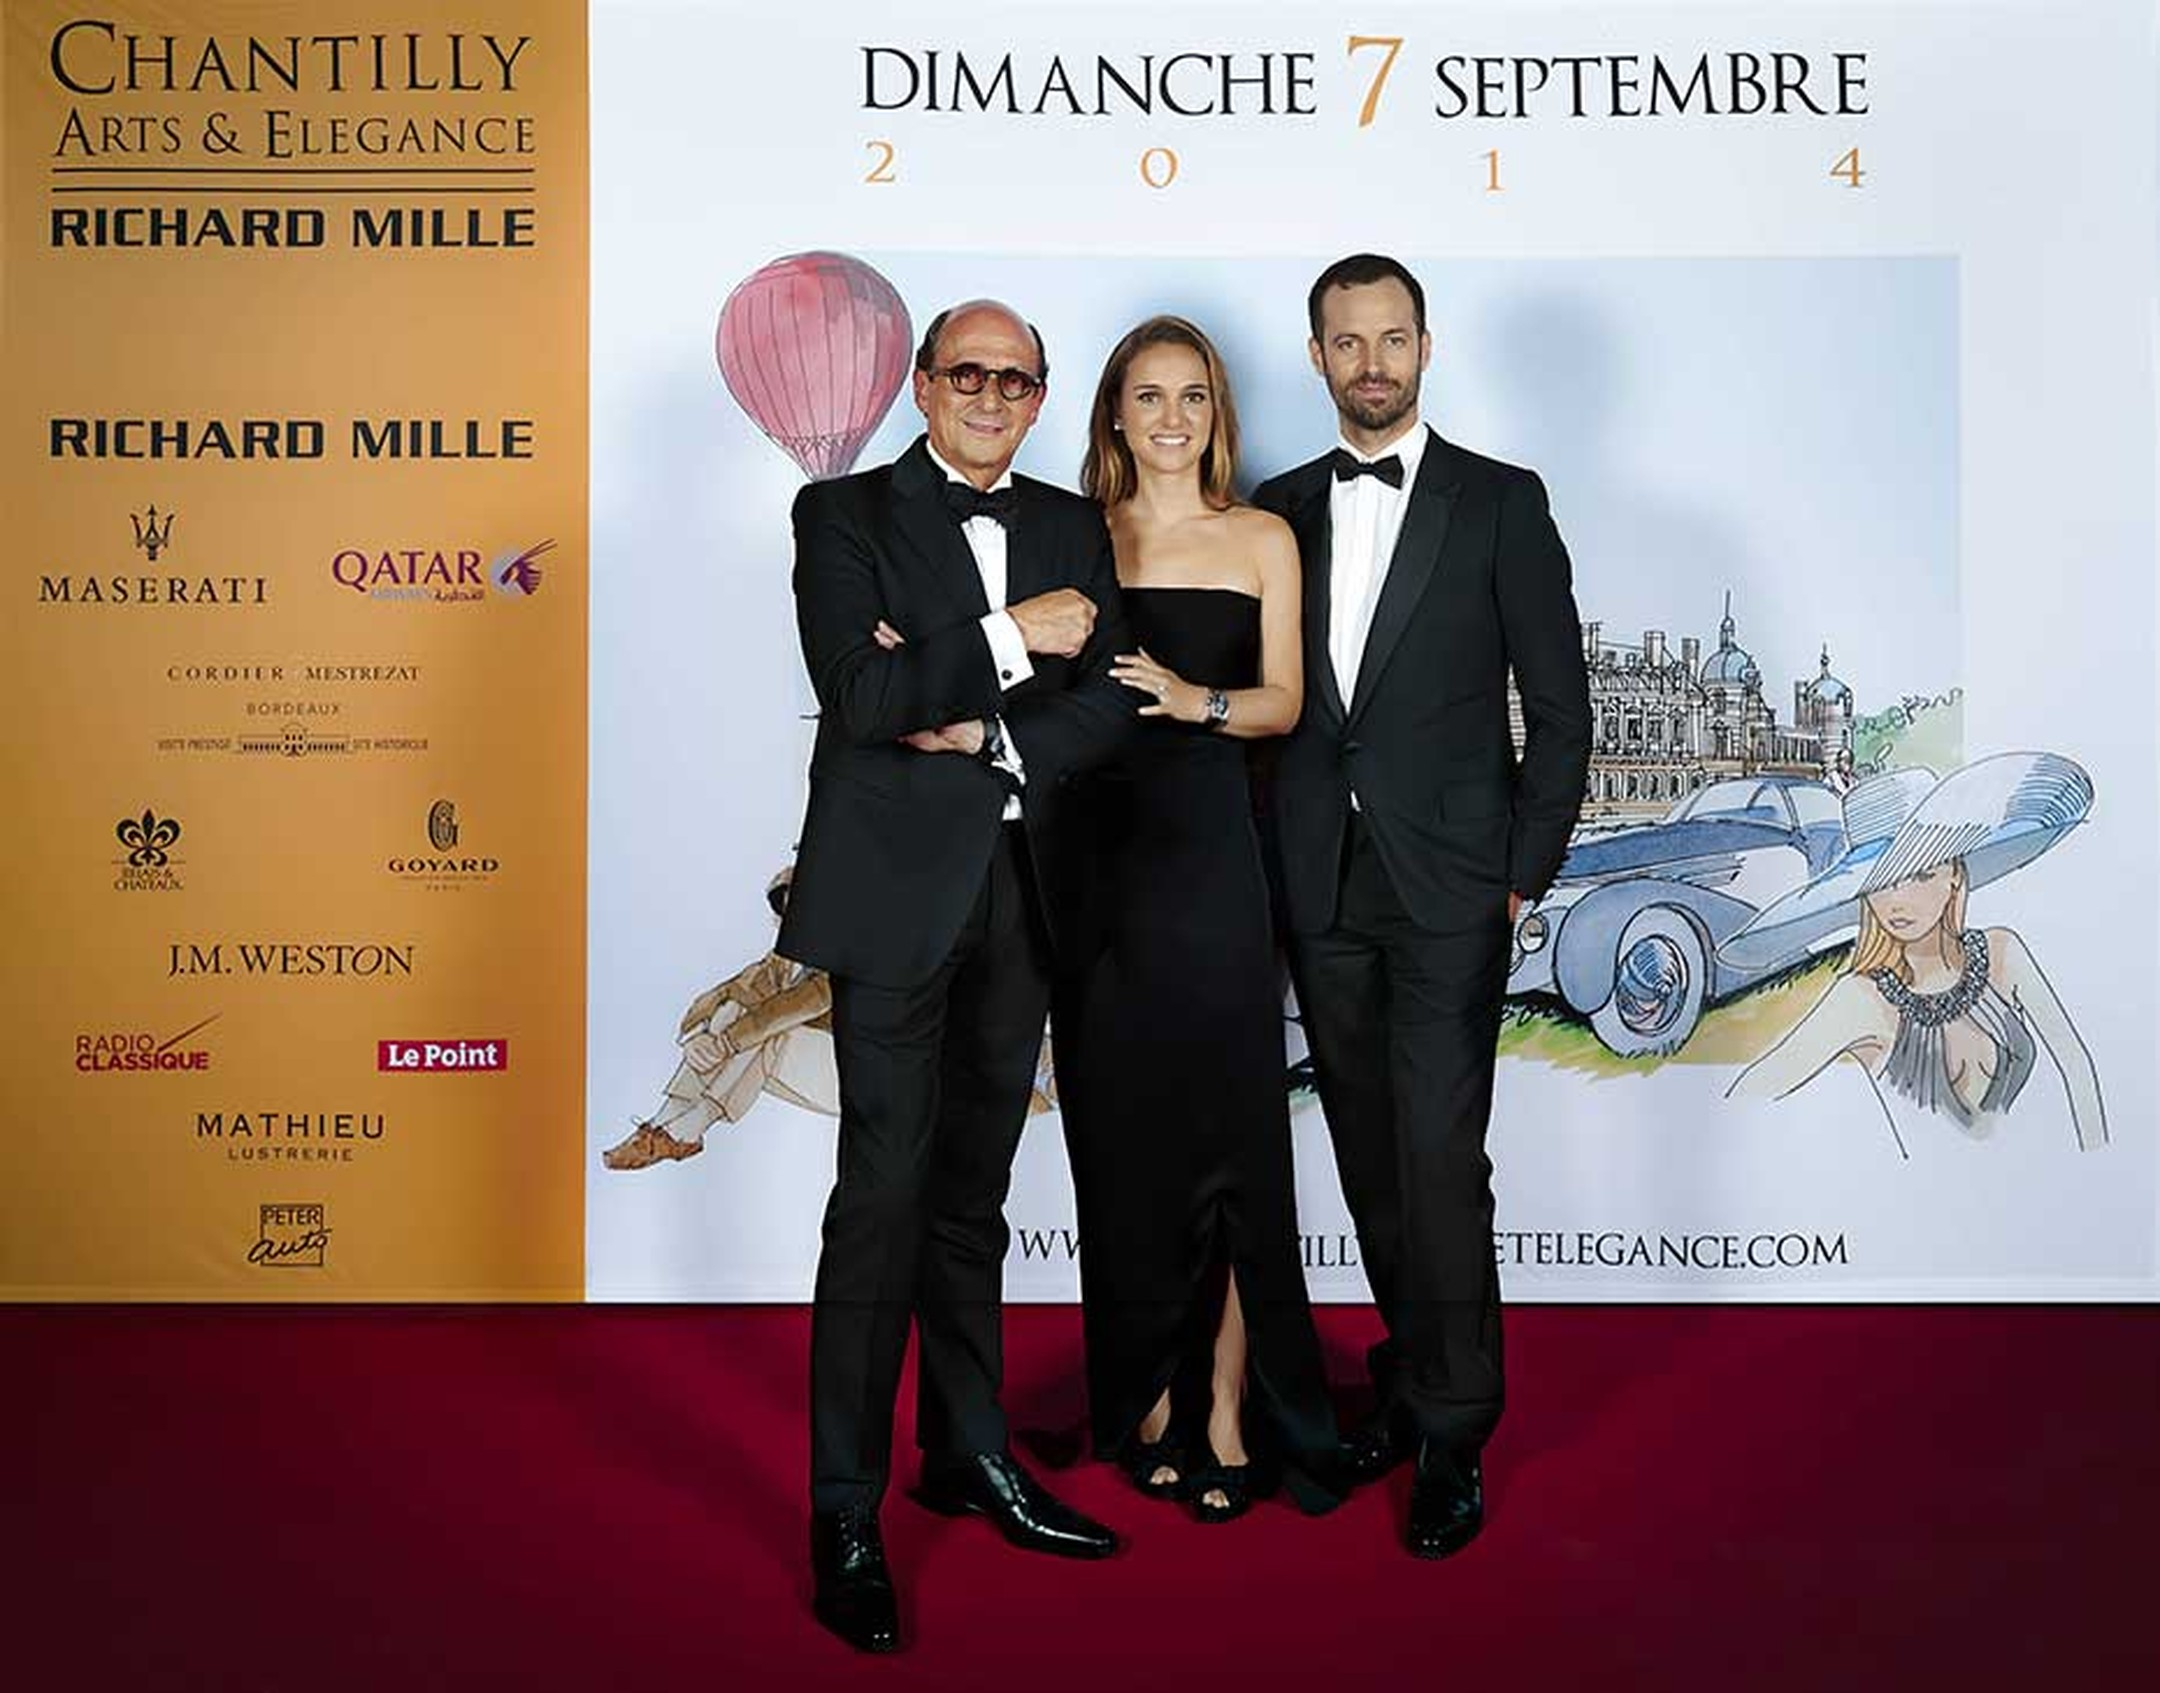 Richard Mille, Natalie Portman and Benjamin Millepied at the Chantilly Arts & Elegance gala dinner on Saturday night.